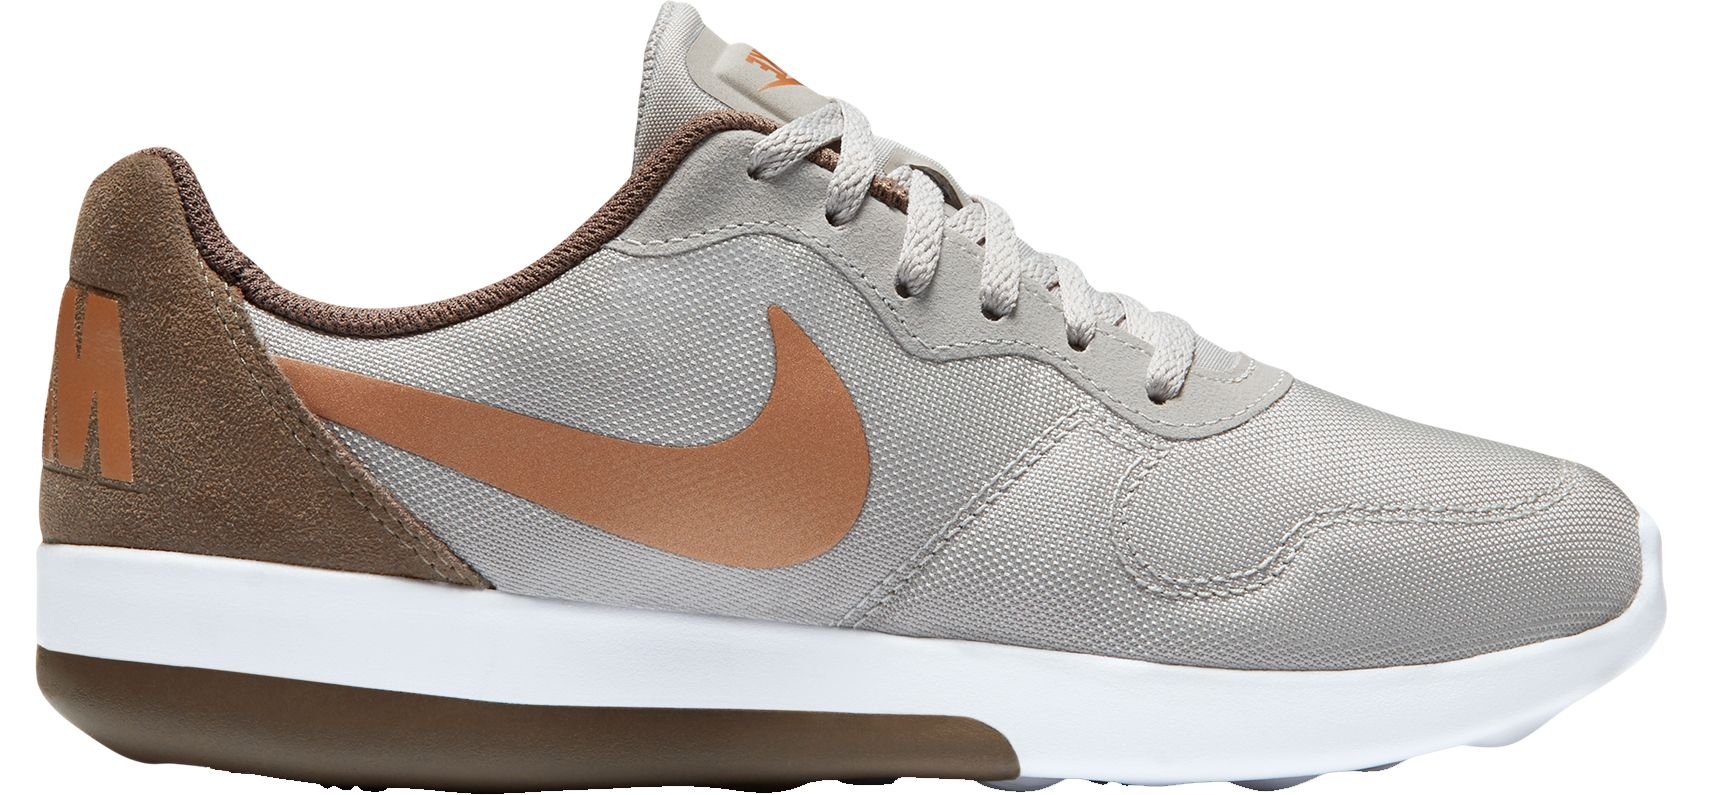 Nike Women S Md Runner  Low Shoes Rose Gold